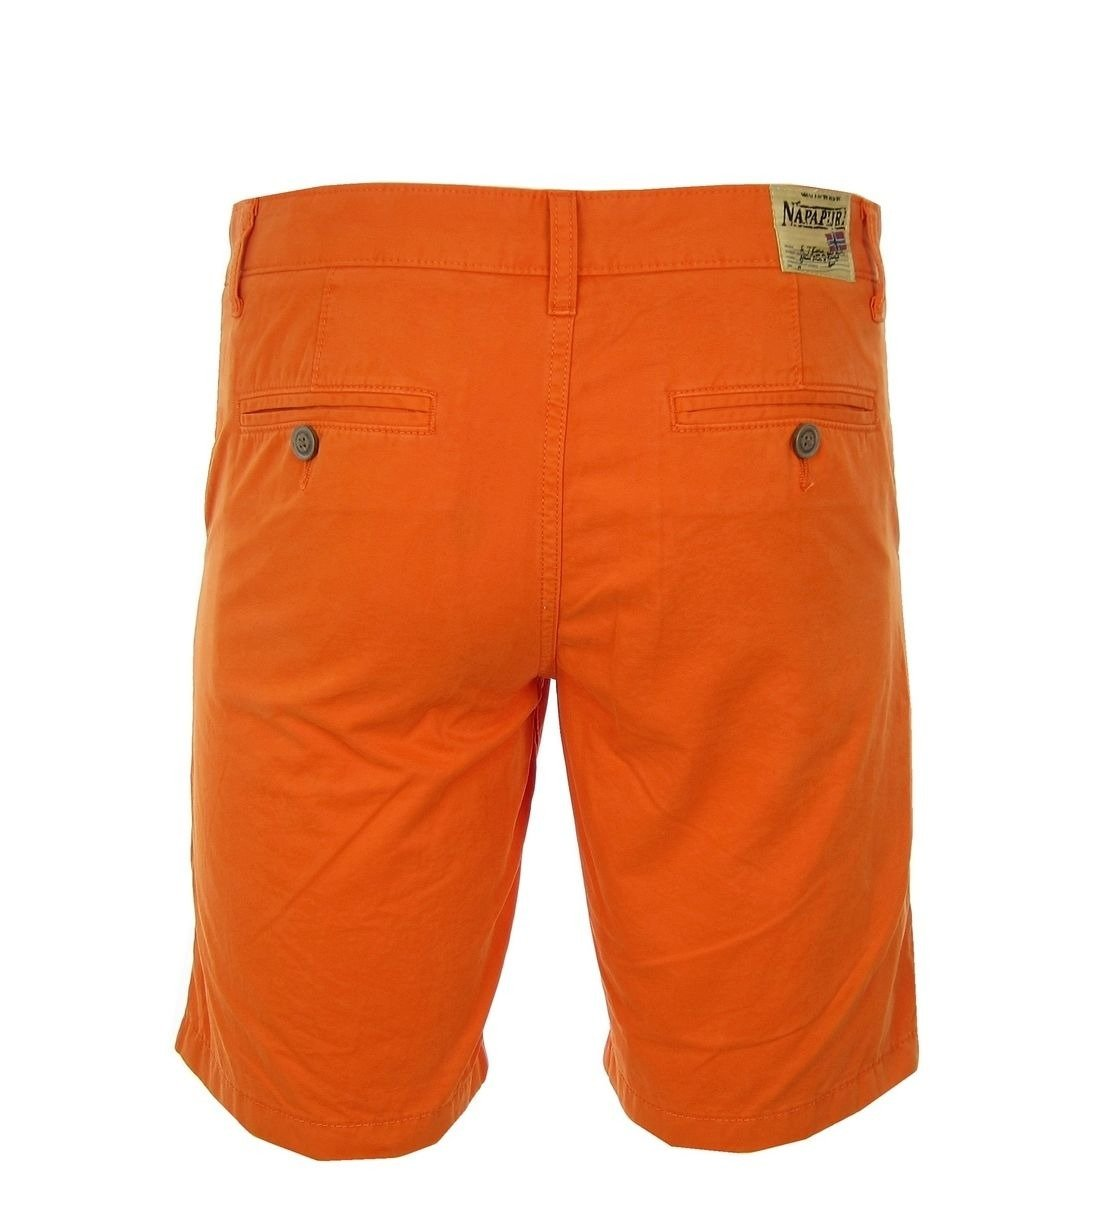 wholesale dealer 6ac30 a6799 NAPAPIJRI Nayerou Herren Men Shorts Kurz Hose Chino Bermuda Orange Neu New  Logo